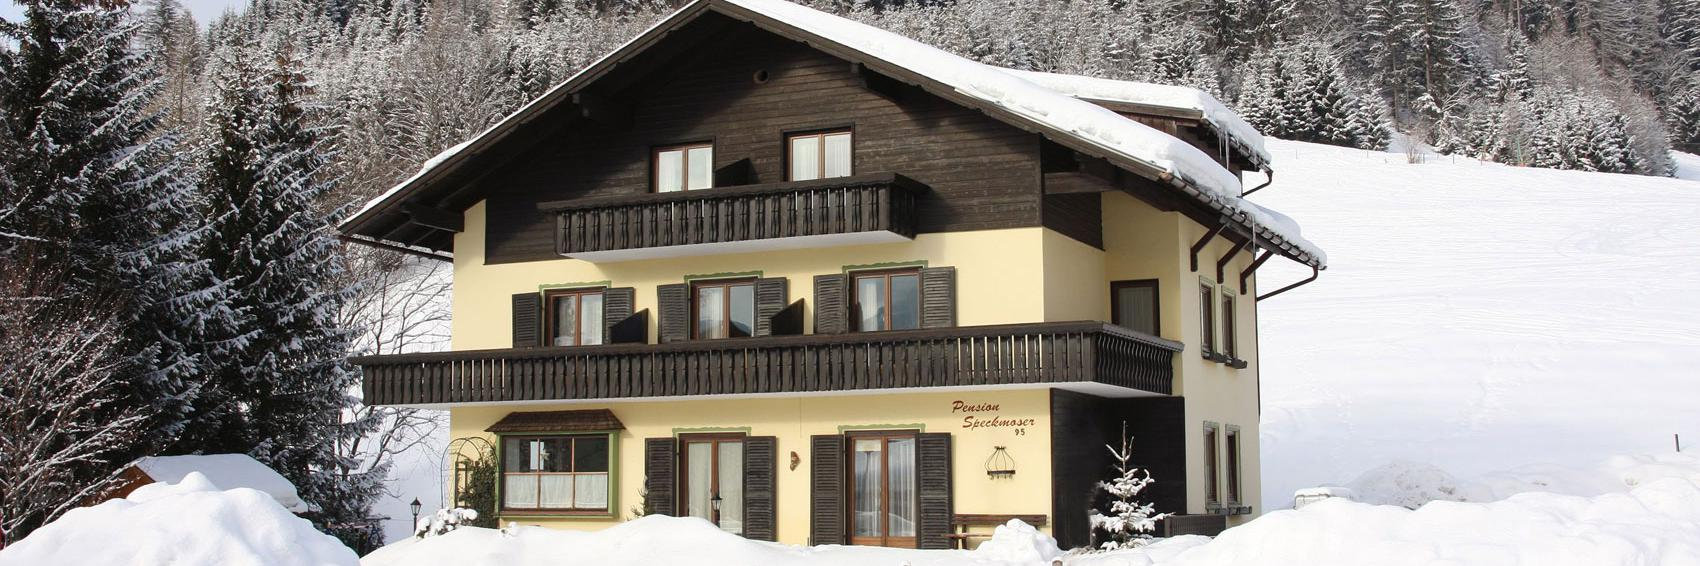 Winterfoto-3* Pension Speckmoser